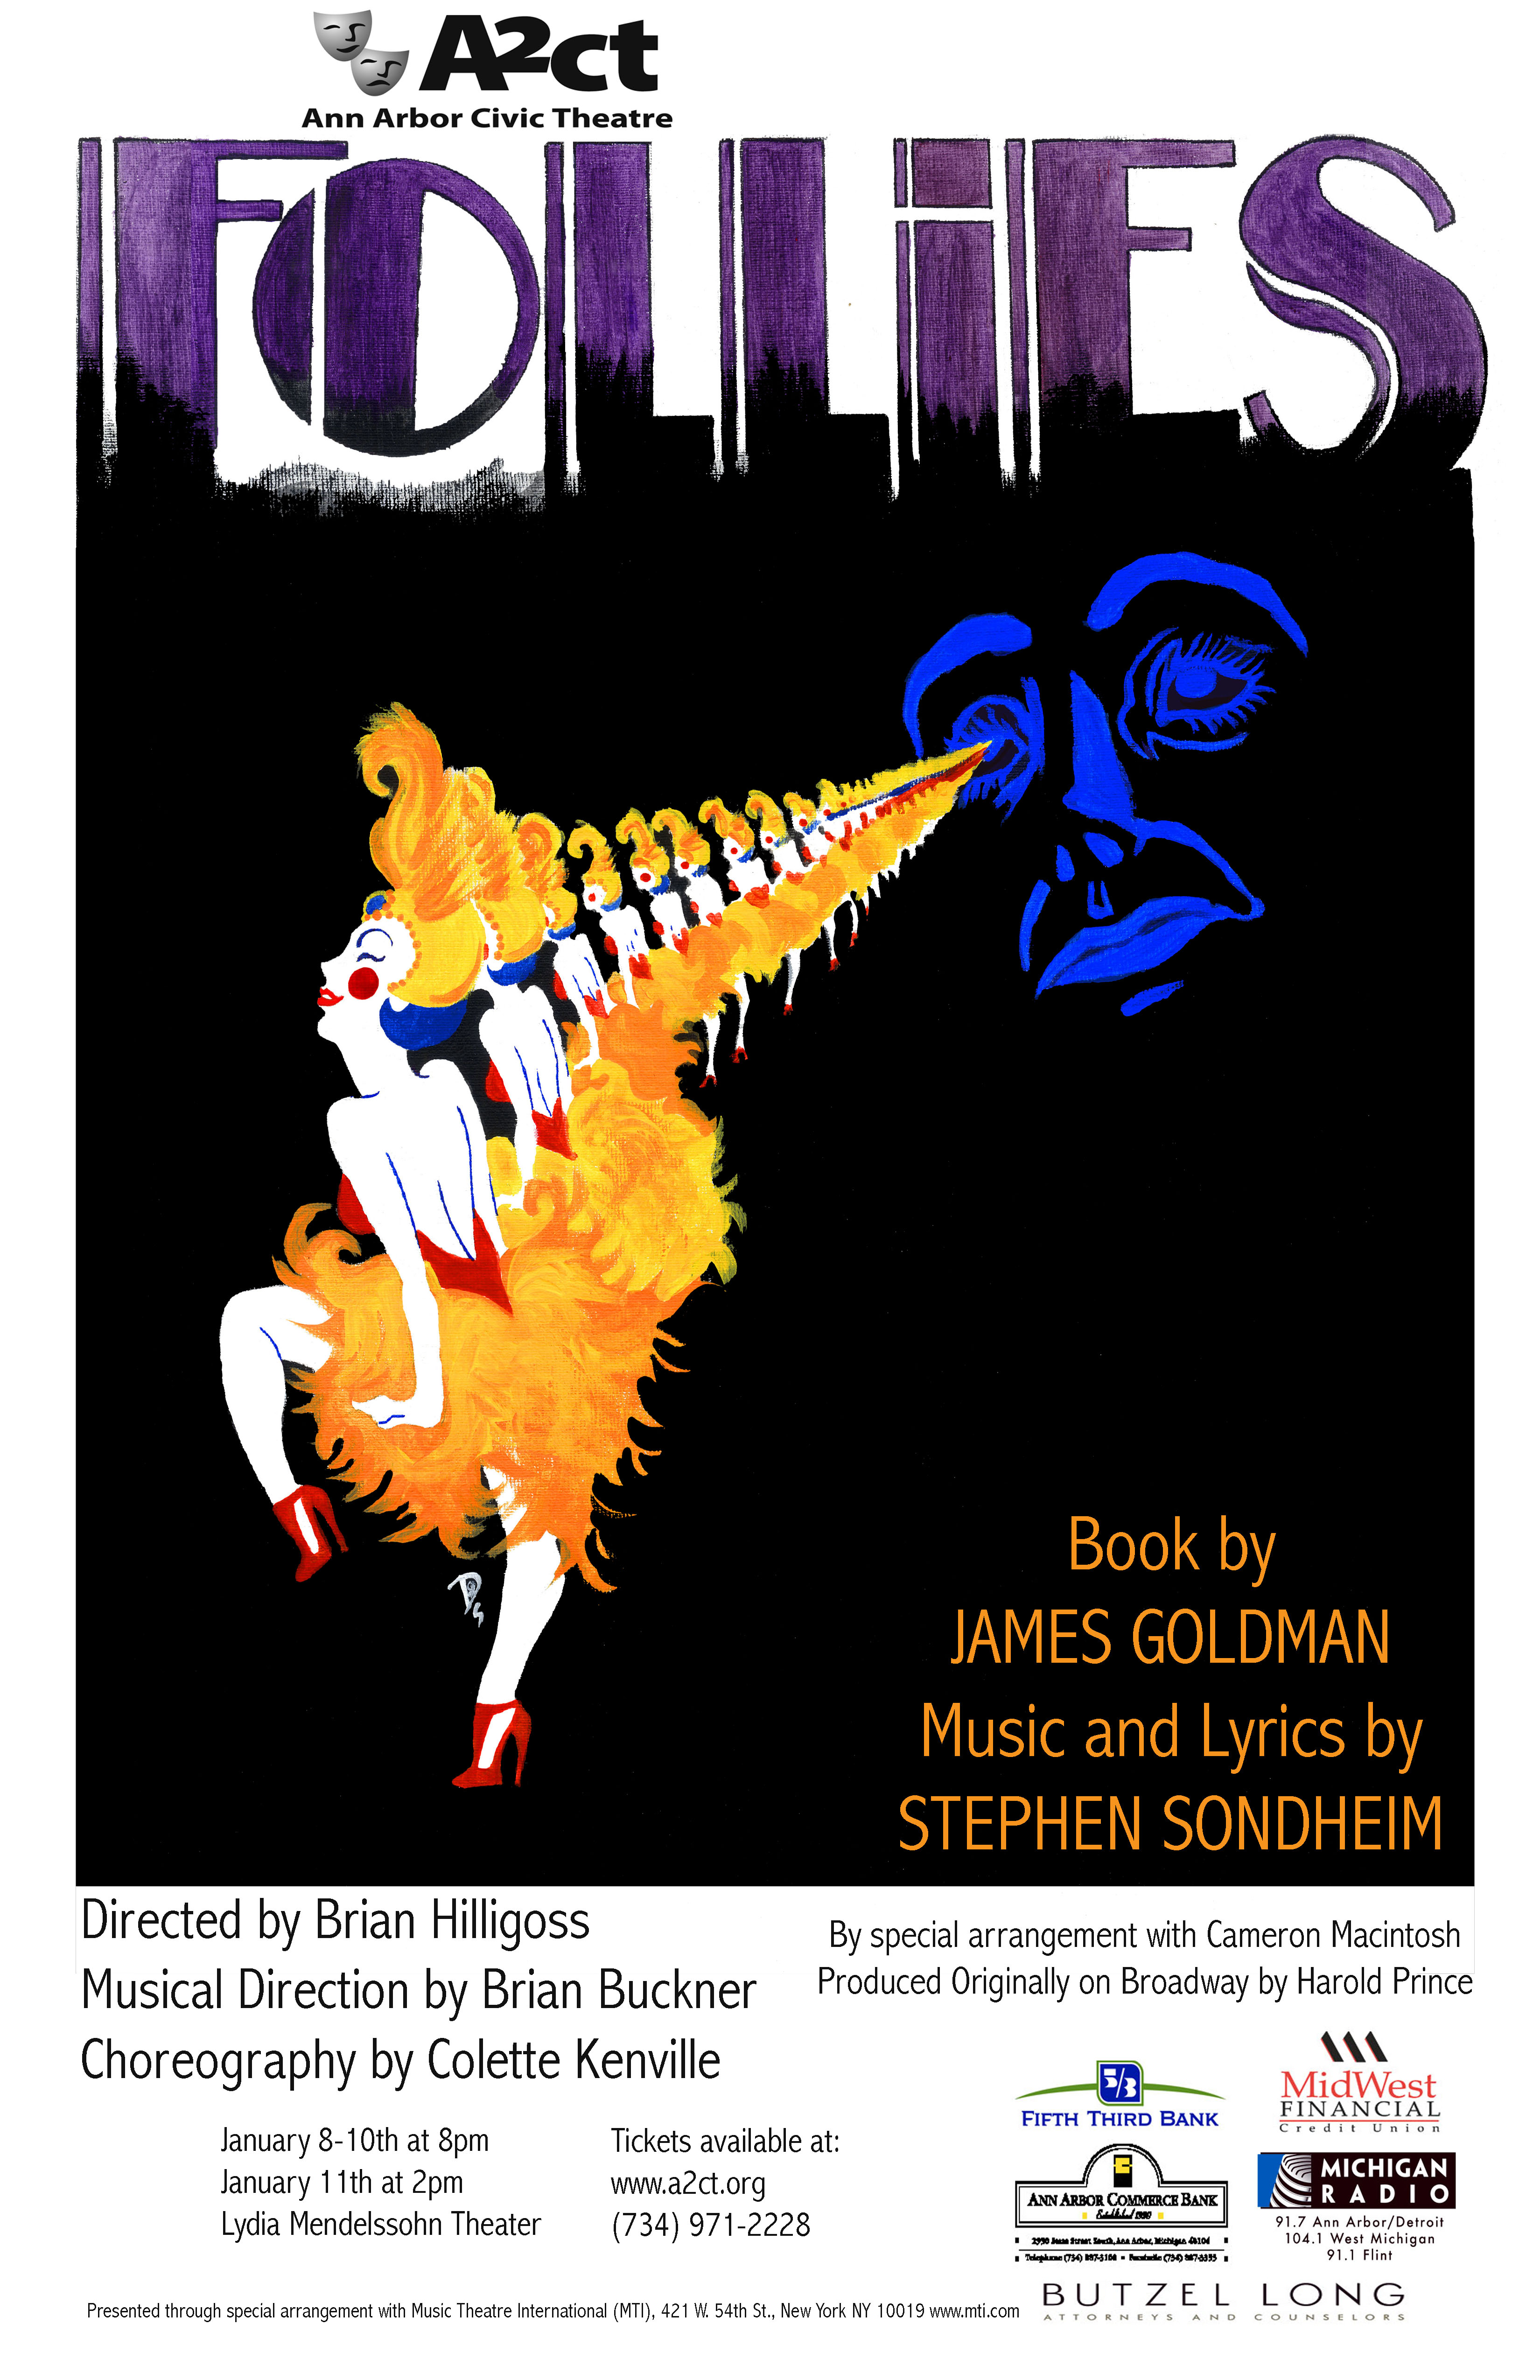 Ann Arbor Civic Theatre Poster: Follies image